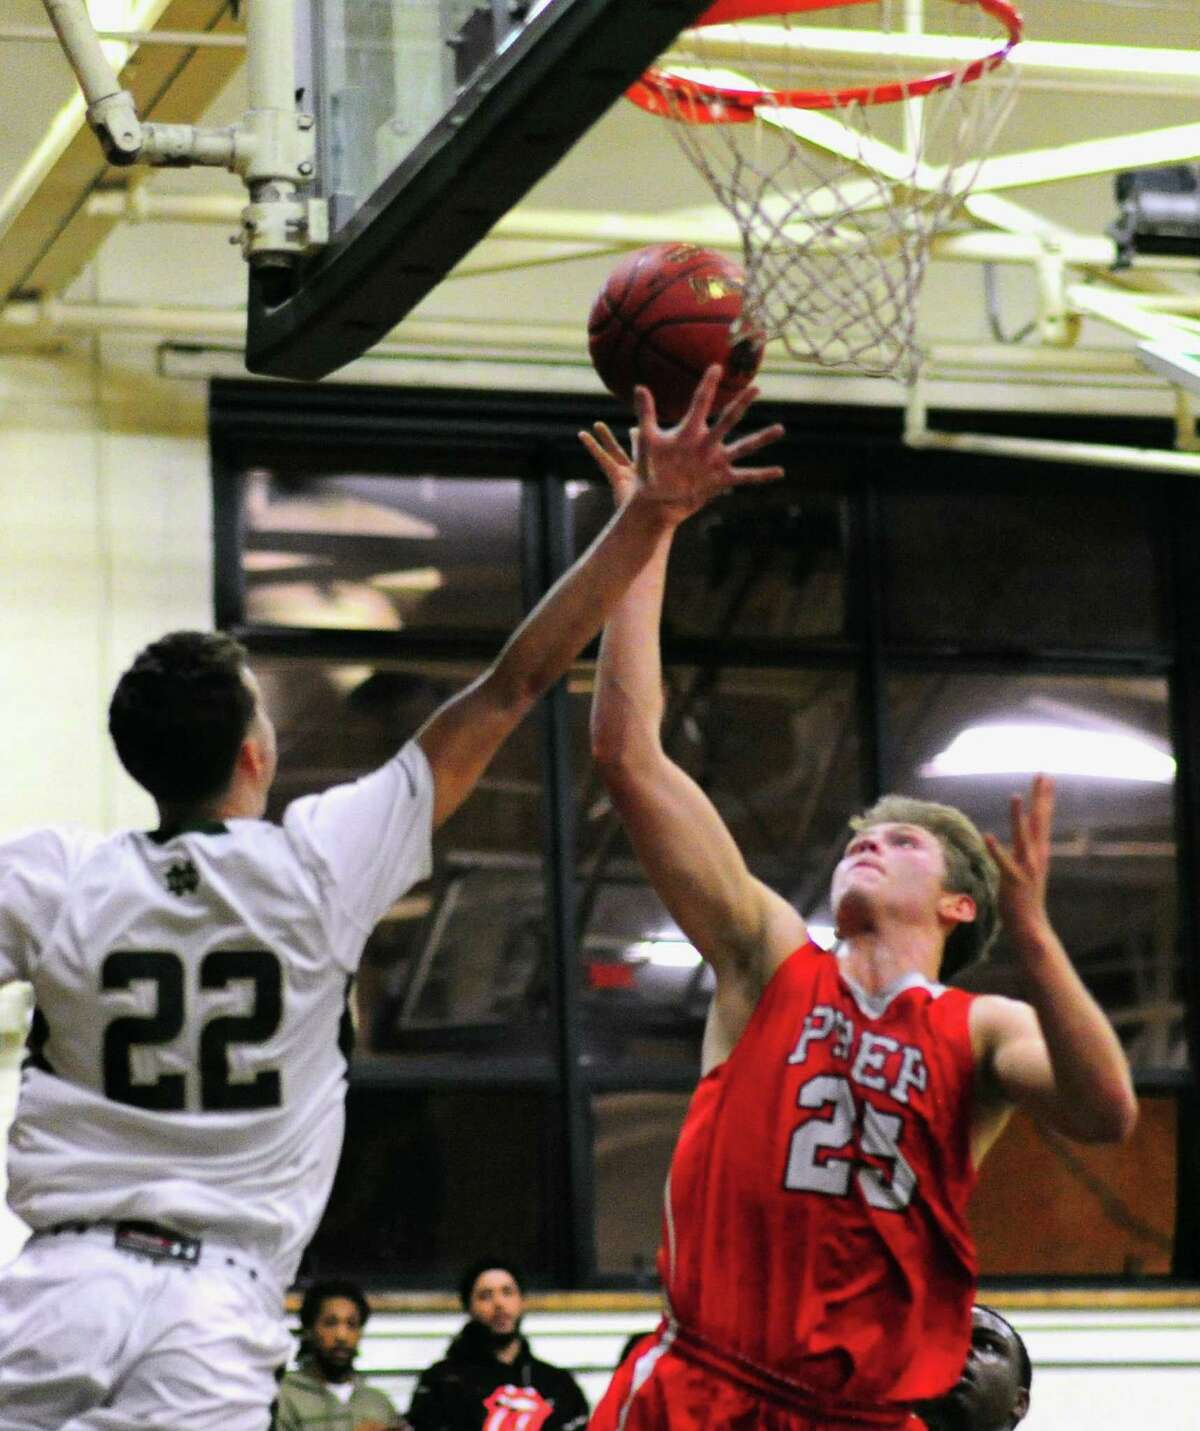 Fairfield Prep's Patrick Harding lays up the ball as Notre Dame of West Haven's Connor Raines defends, during boys high school basketball action in West Haven, Conn., on Friday December 23, 2016.